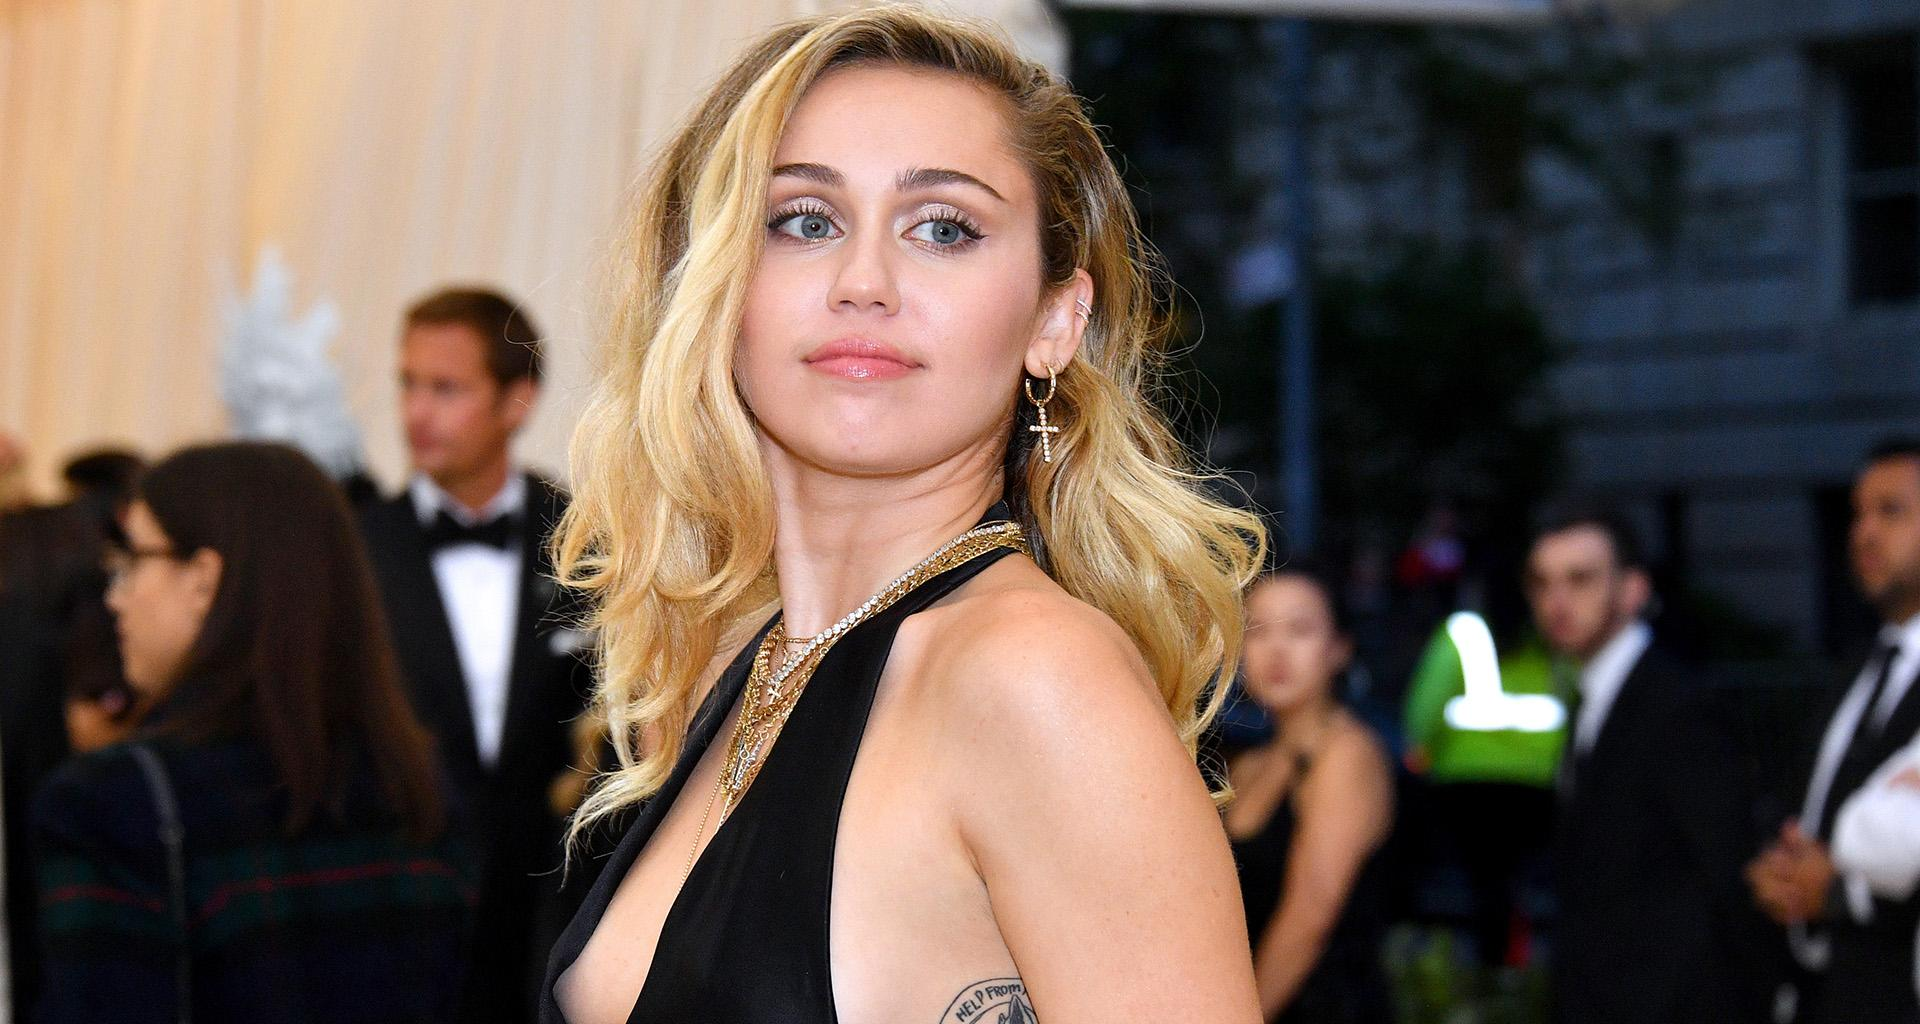 Miley Cyrus Expecting Her First Baby? - Friends Are Convinced After She Spontaneously Marries Liam Hemsworth